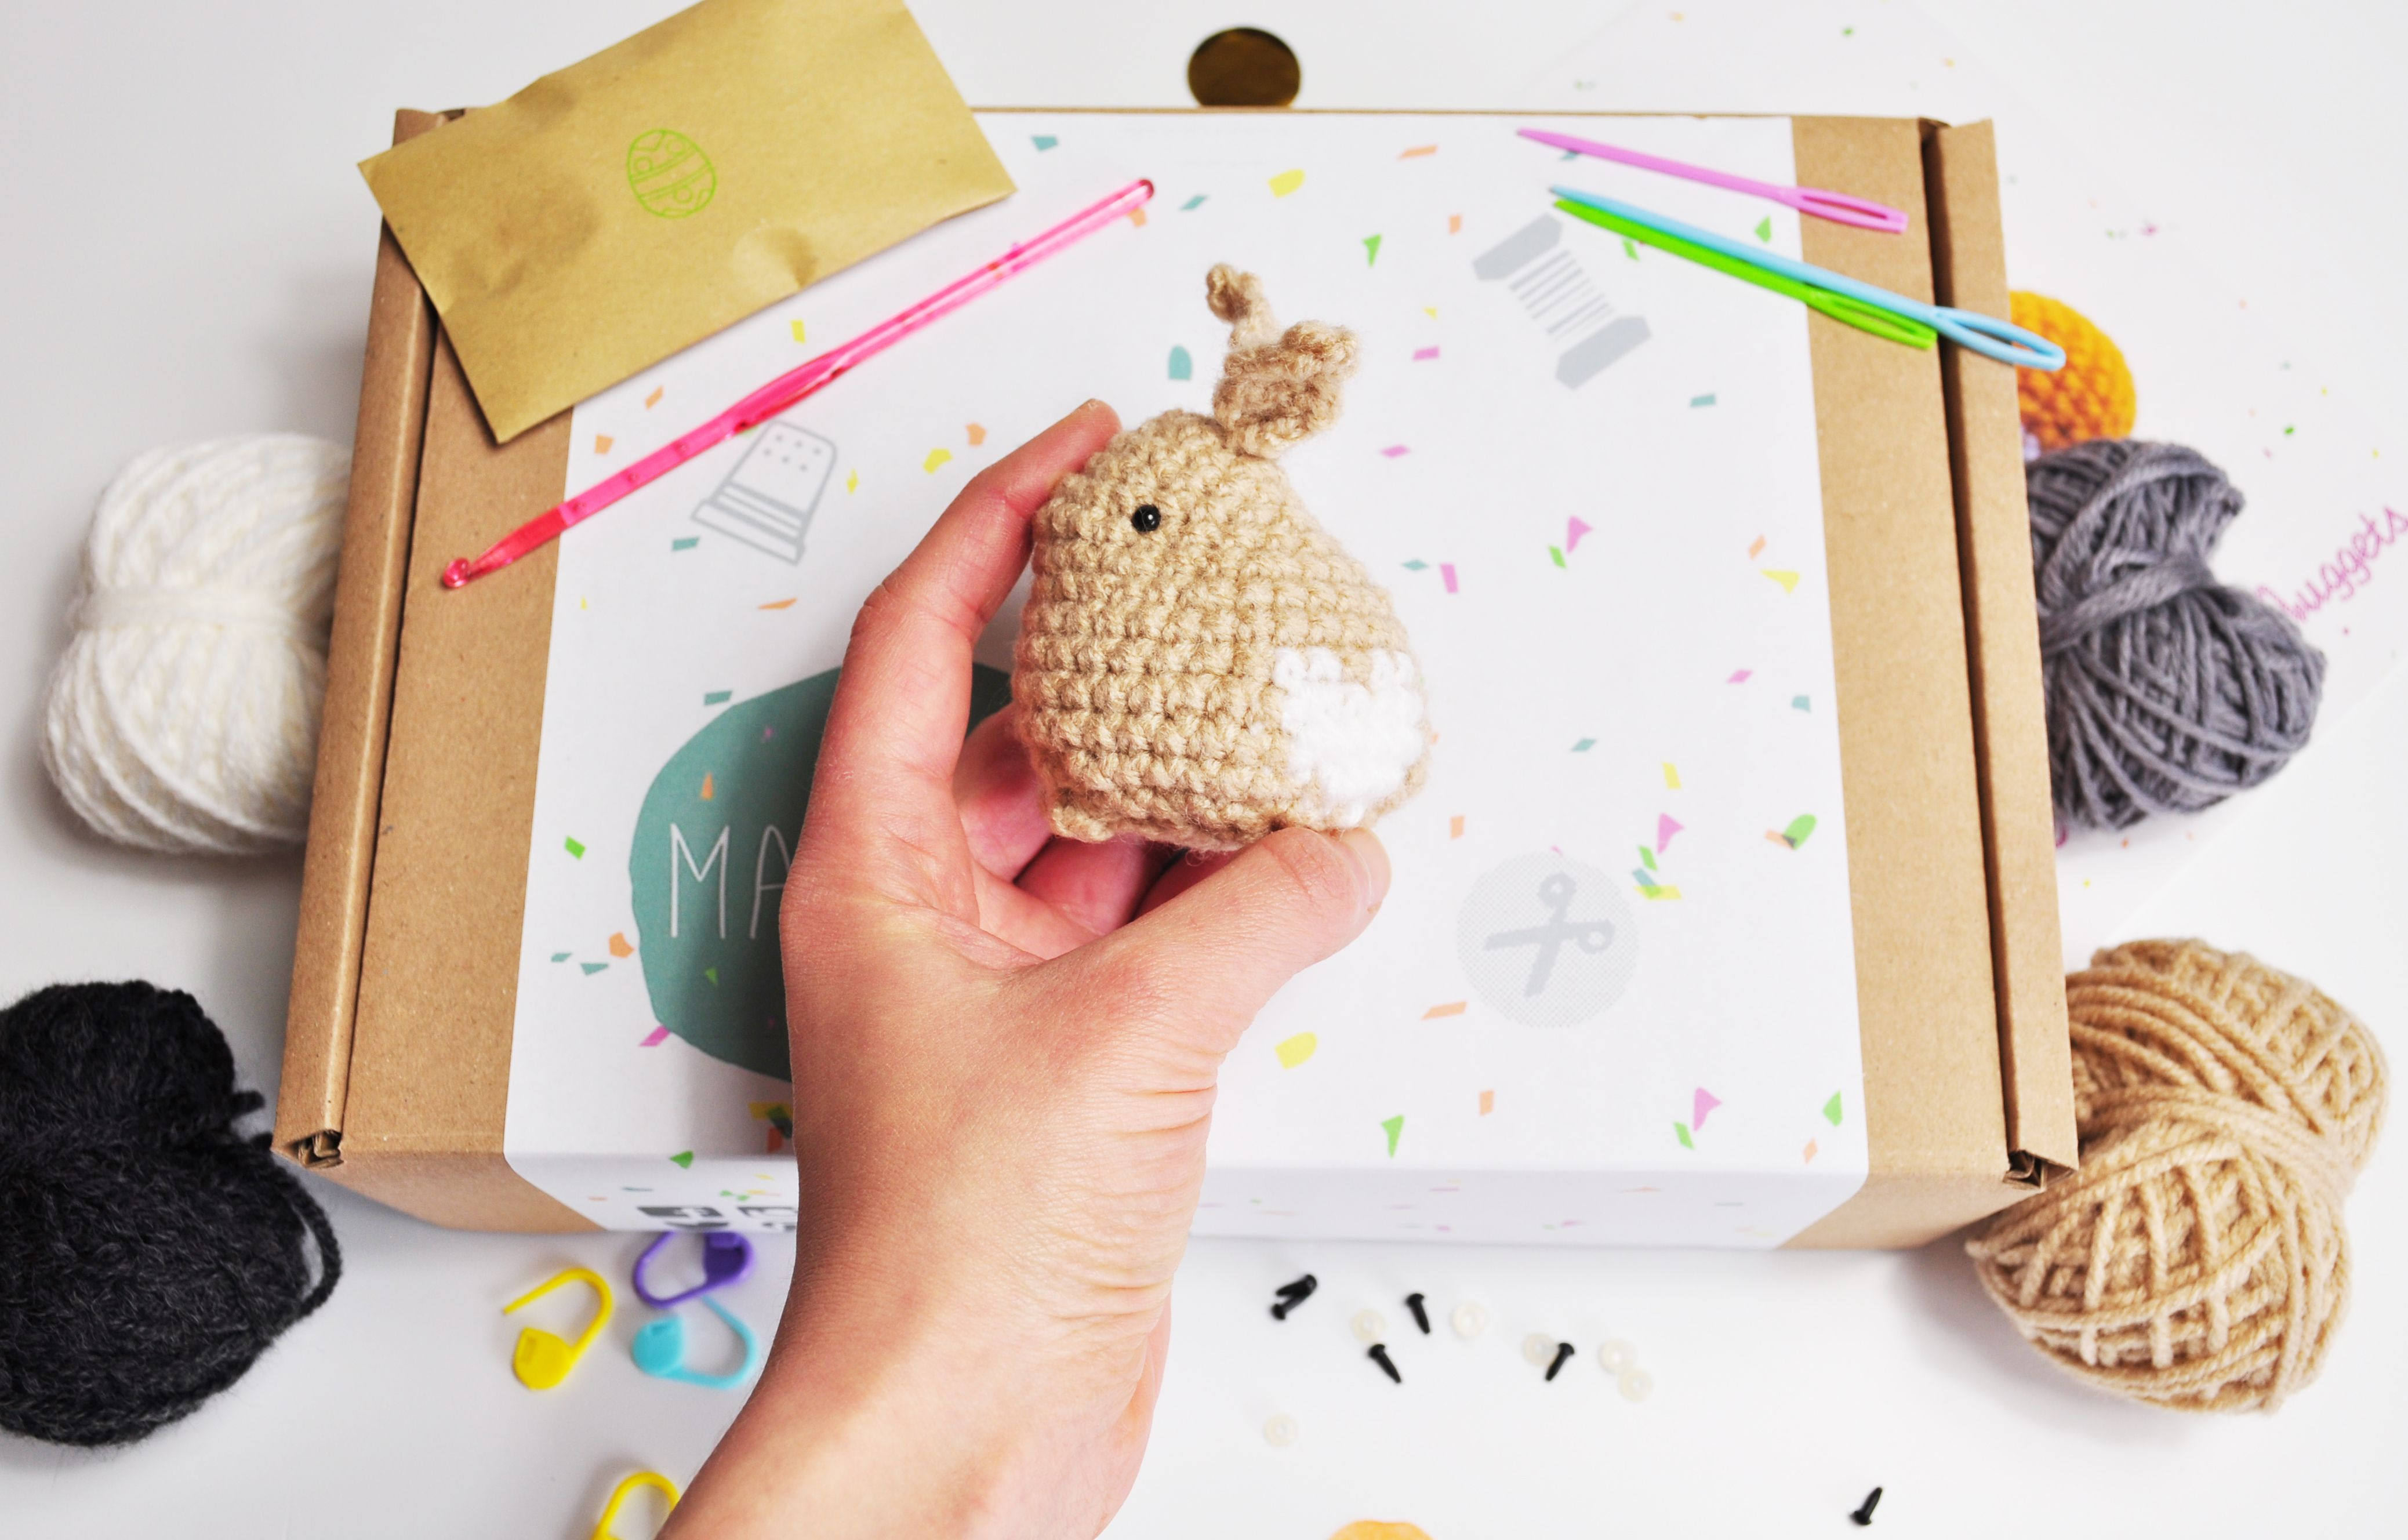 Make Your Own Crochet Bunny Kit From Makerly Crafts Craft Box Subscription Bunny Crafts Monthly Crafts